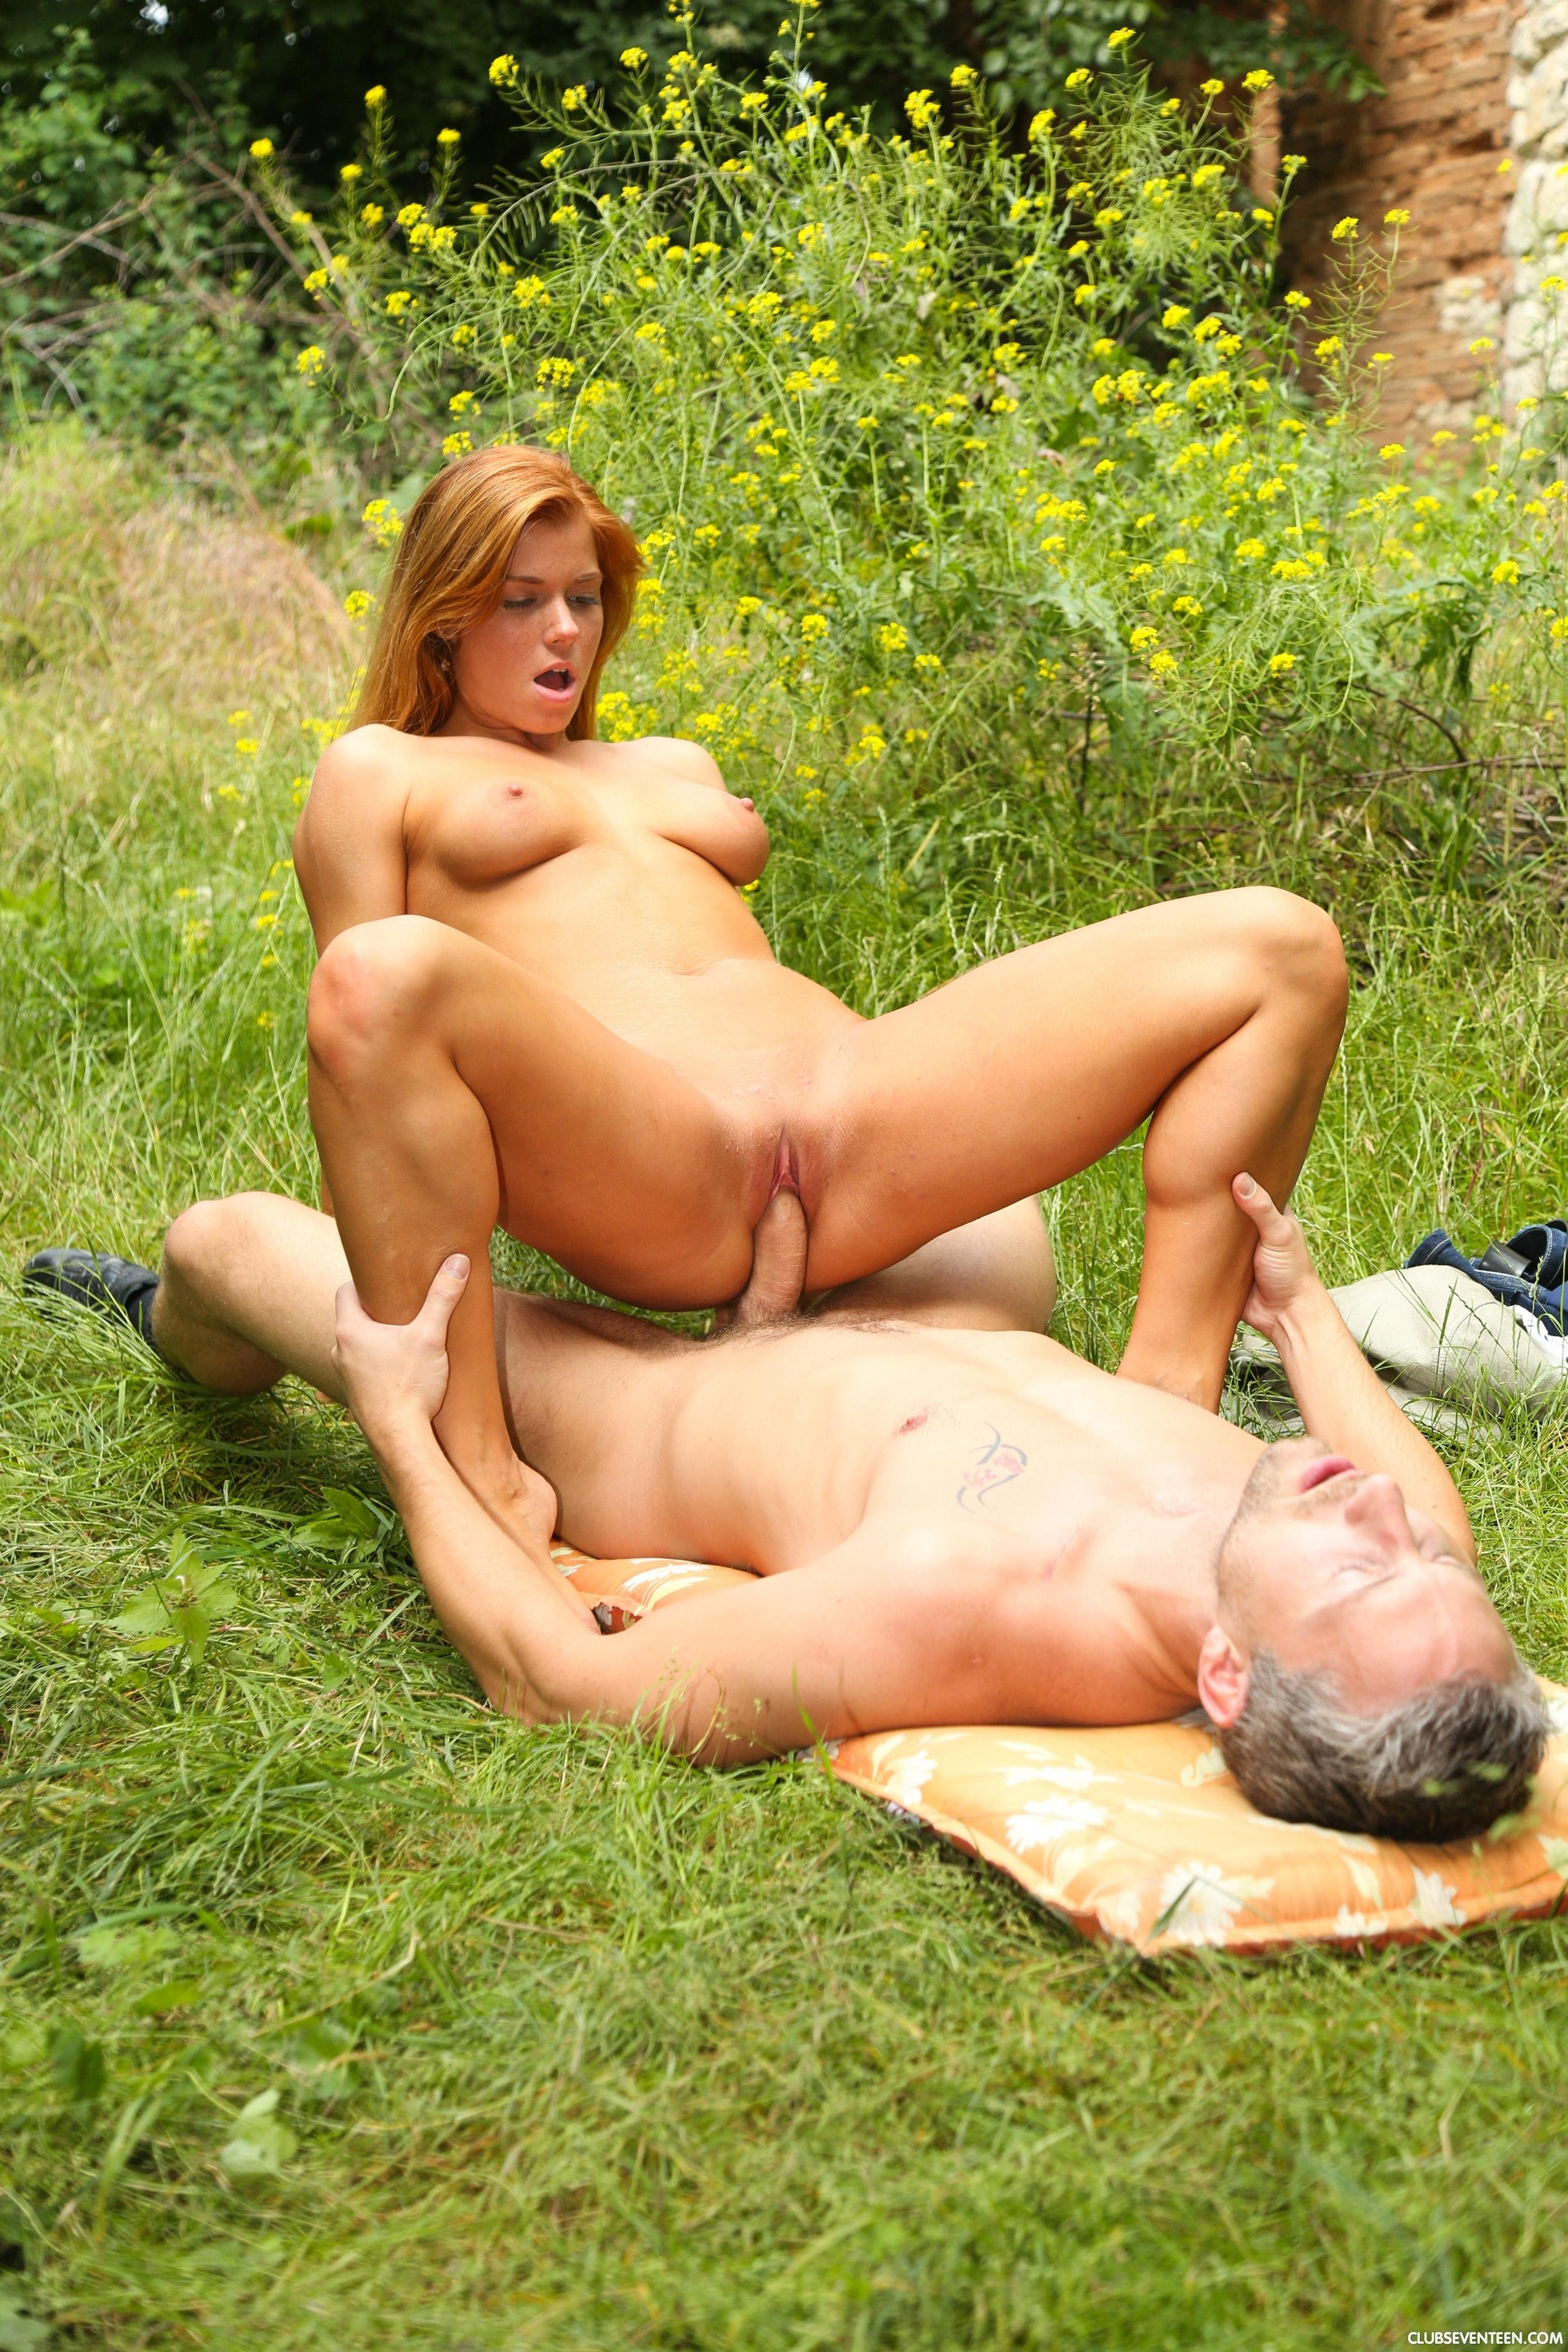 Chuby amateur squirting